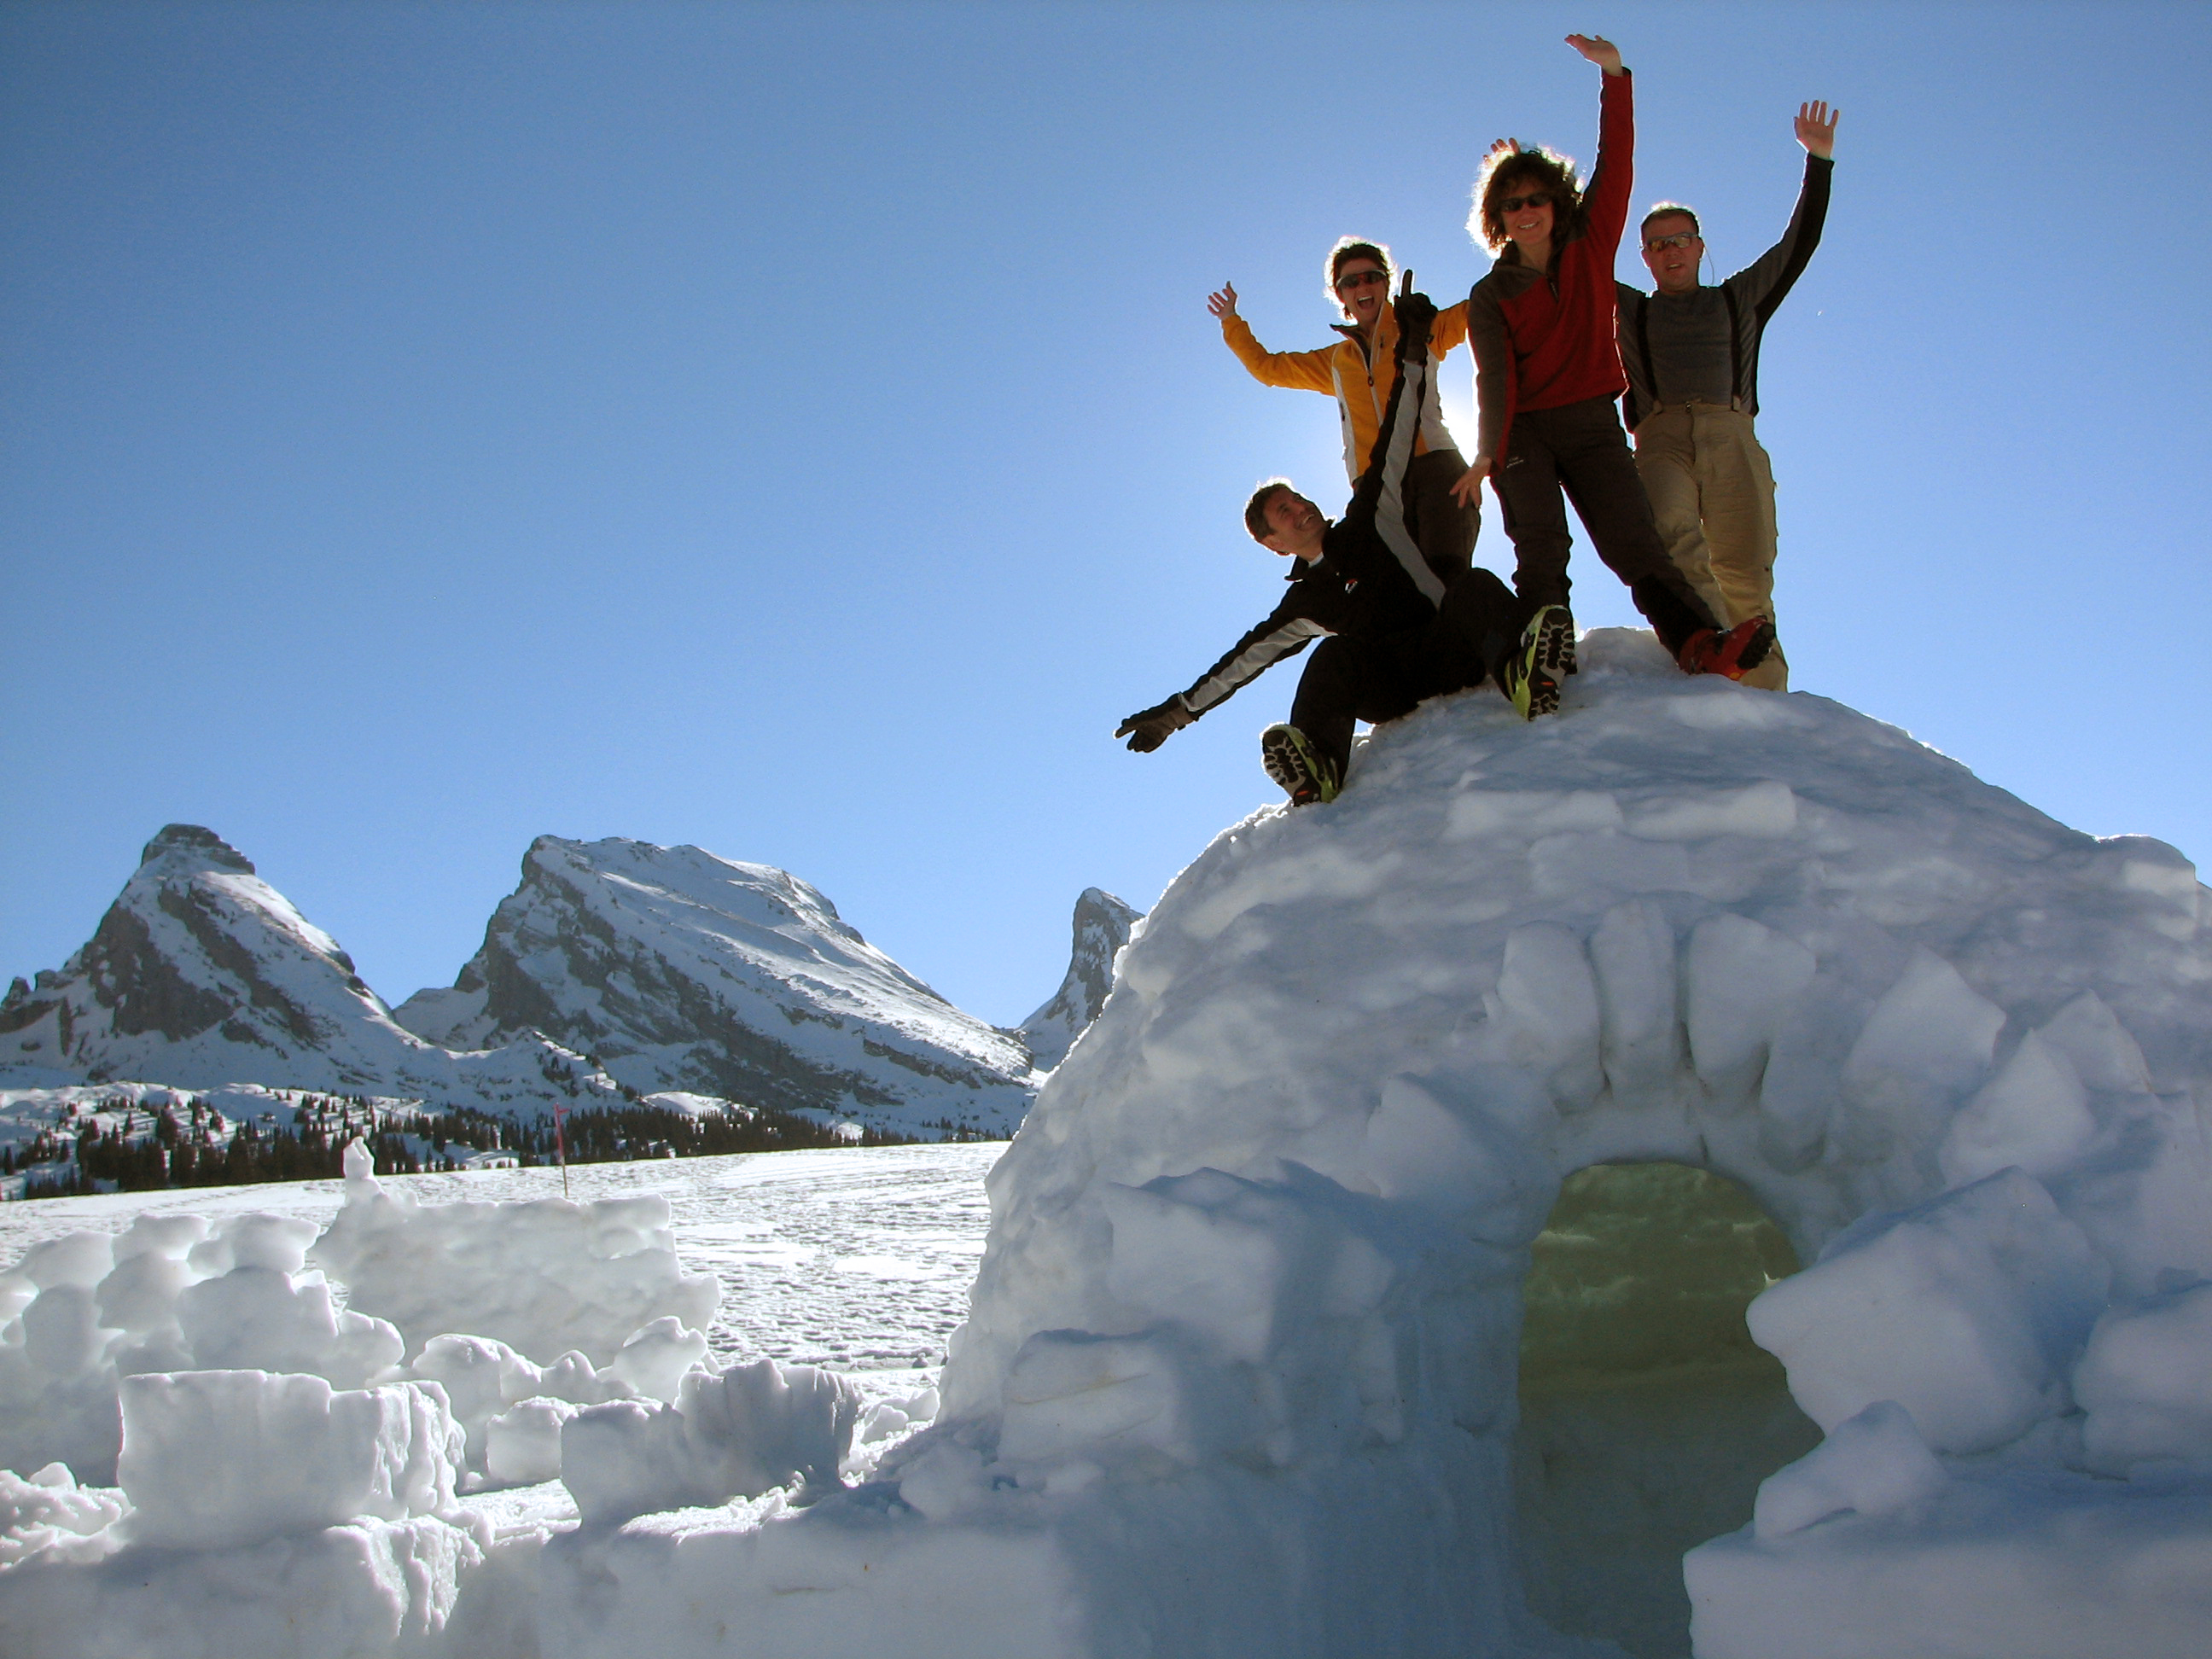 Igloo building on a mountain | Switzerland Tourism